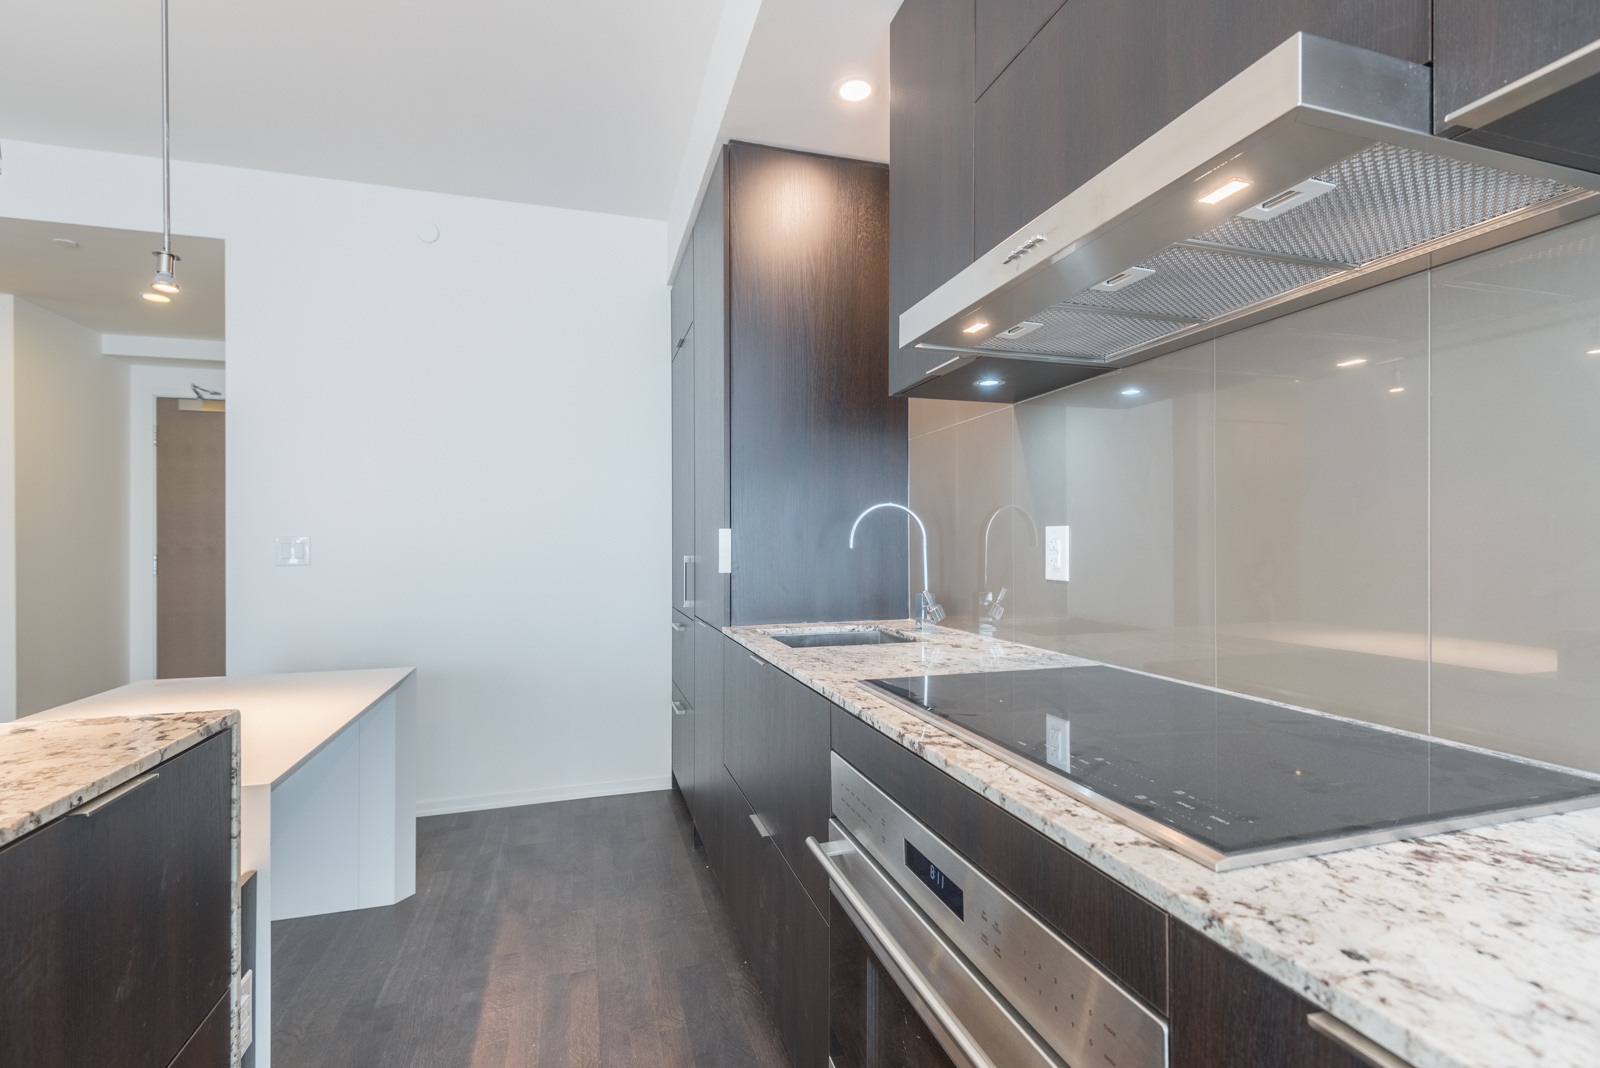 Photo of 1 Bloor kitchen shows appliances and layout. Wins Lai is a Toronto Real Estate Agent. Almost and most of all, most noteworthy, especially relevant and finally so.